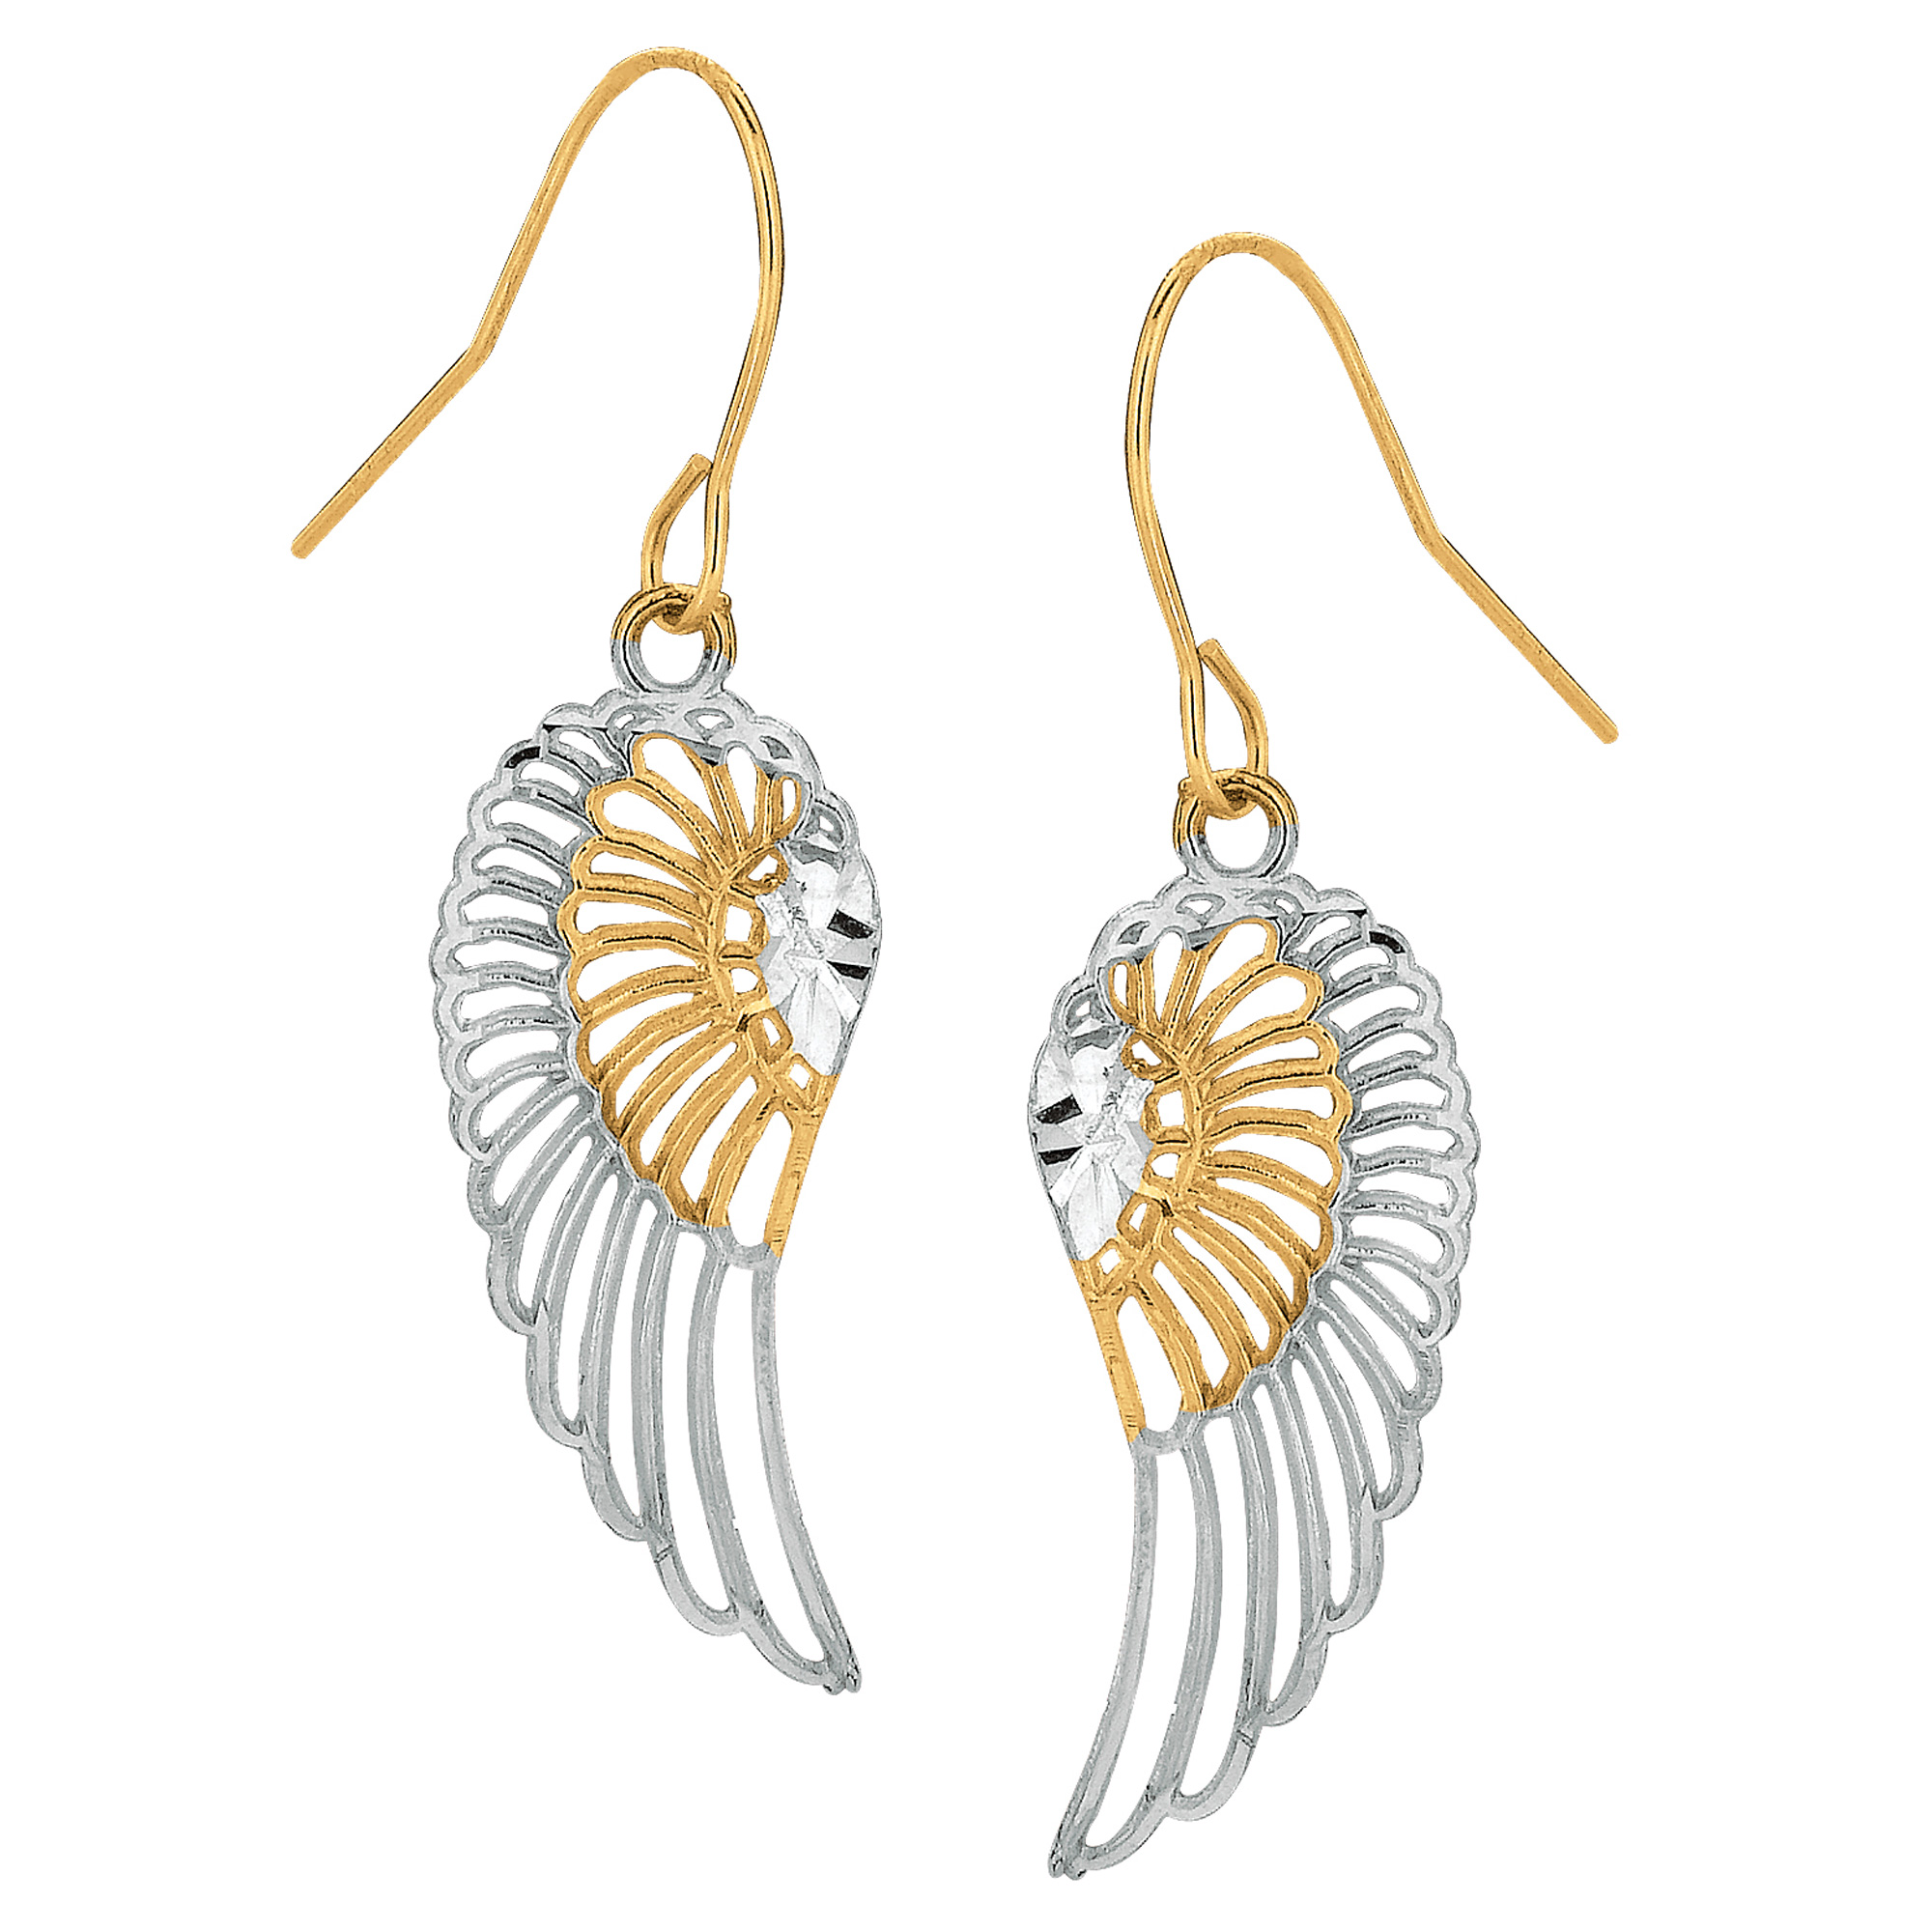 10k 2 Tone Yellow And White Gold Diamond Cut Angel Wings Drop Earrings Complete your jewelry collection with a gorgeous pair of 10Kt gold angel wings shaped dangle earrings. These 2 tone earrings have a  French wire clasp making them easy to wear and remove.